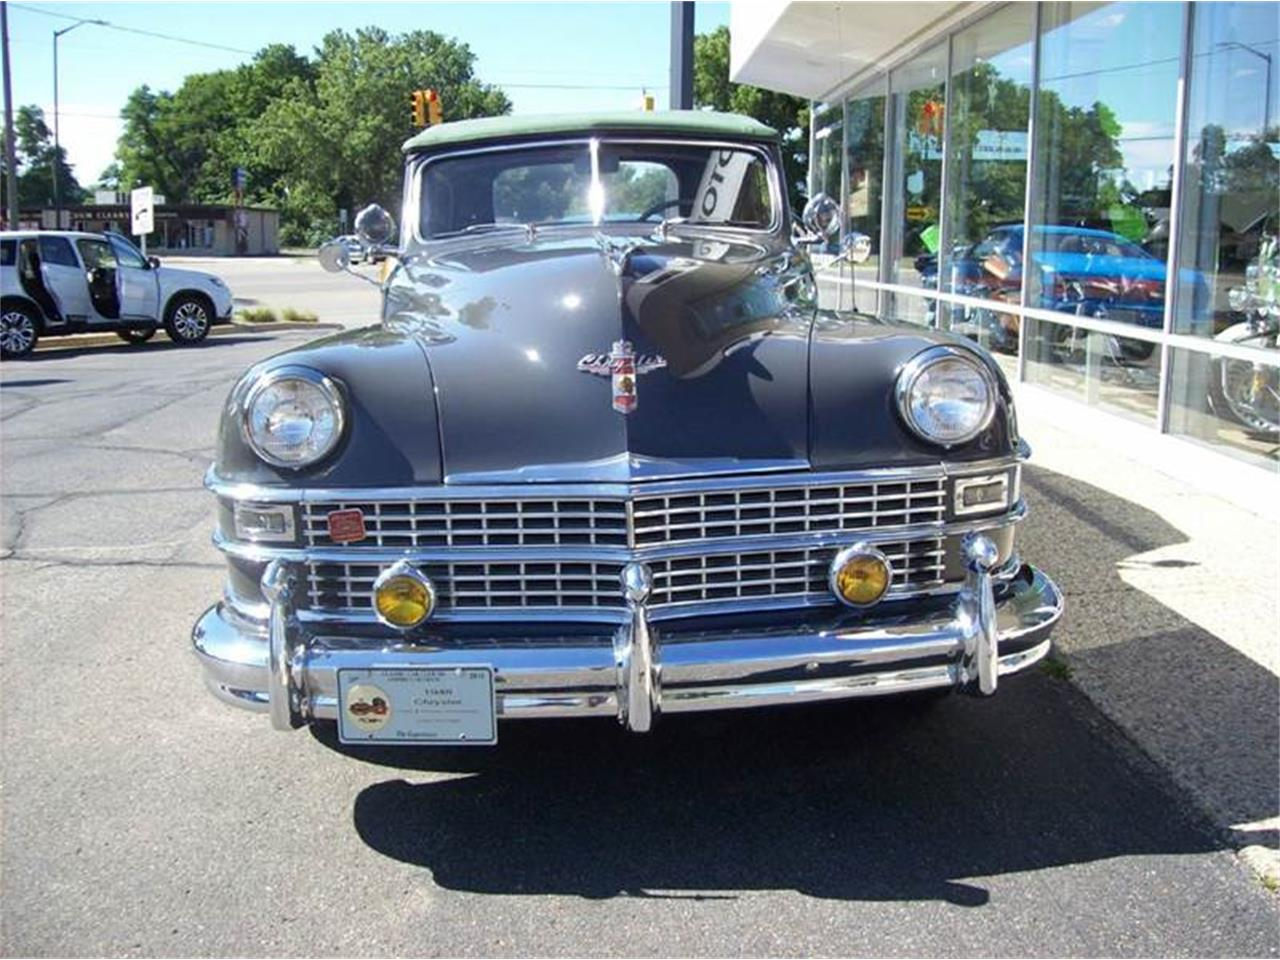 Large Picture of Classic '49 Chrysler Town & Country Offered by Verhage Mitsubishi - J40N